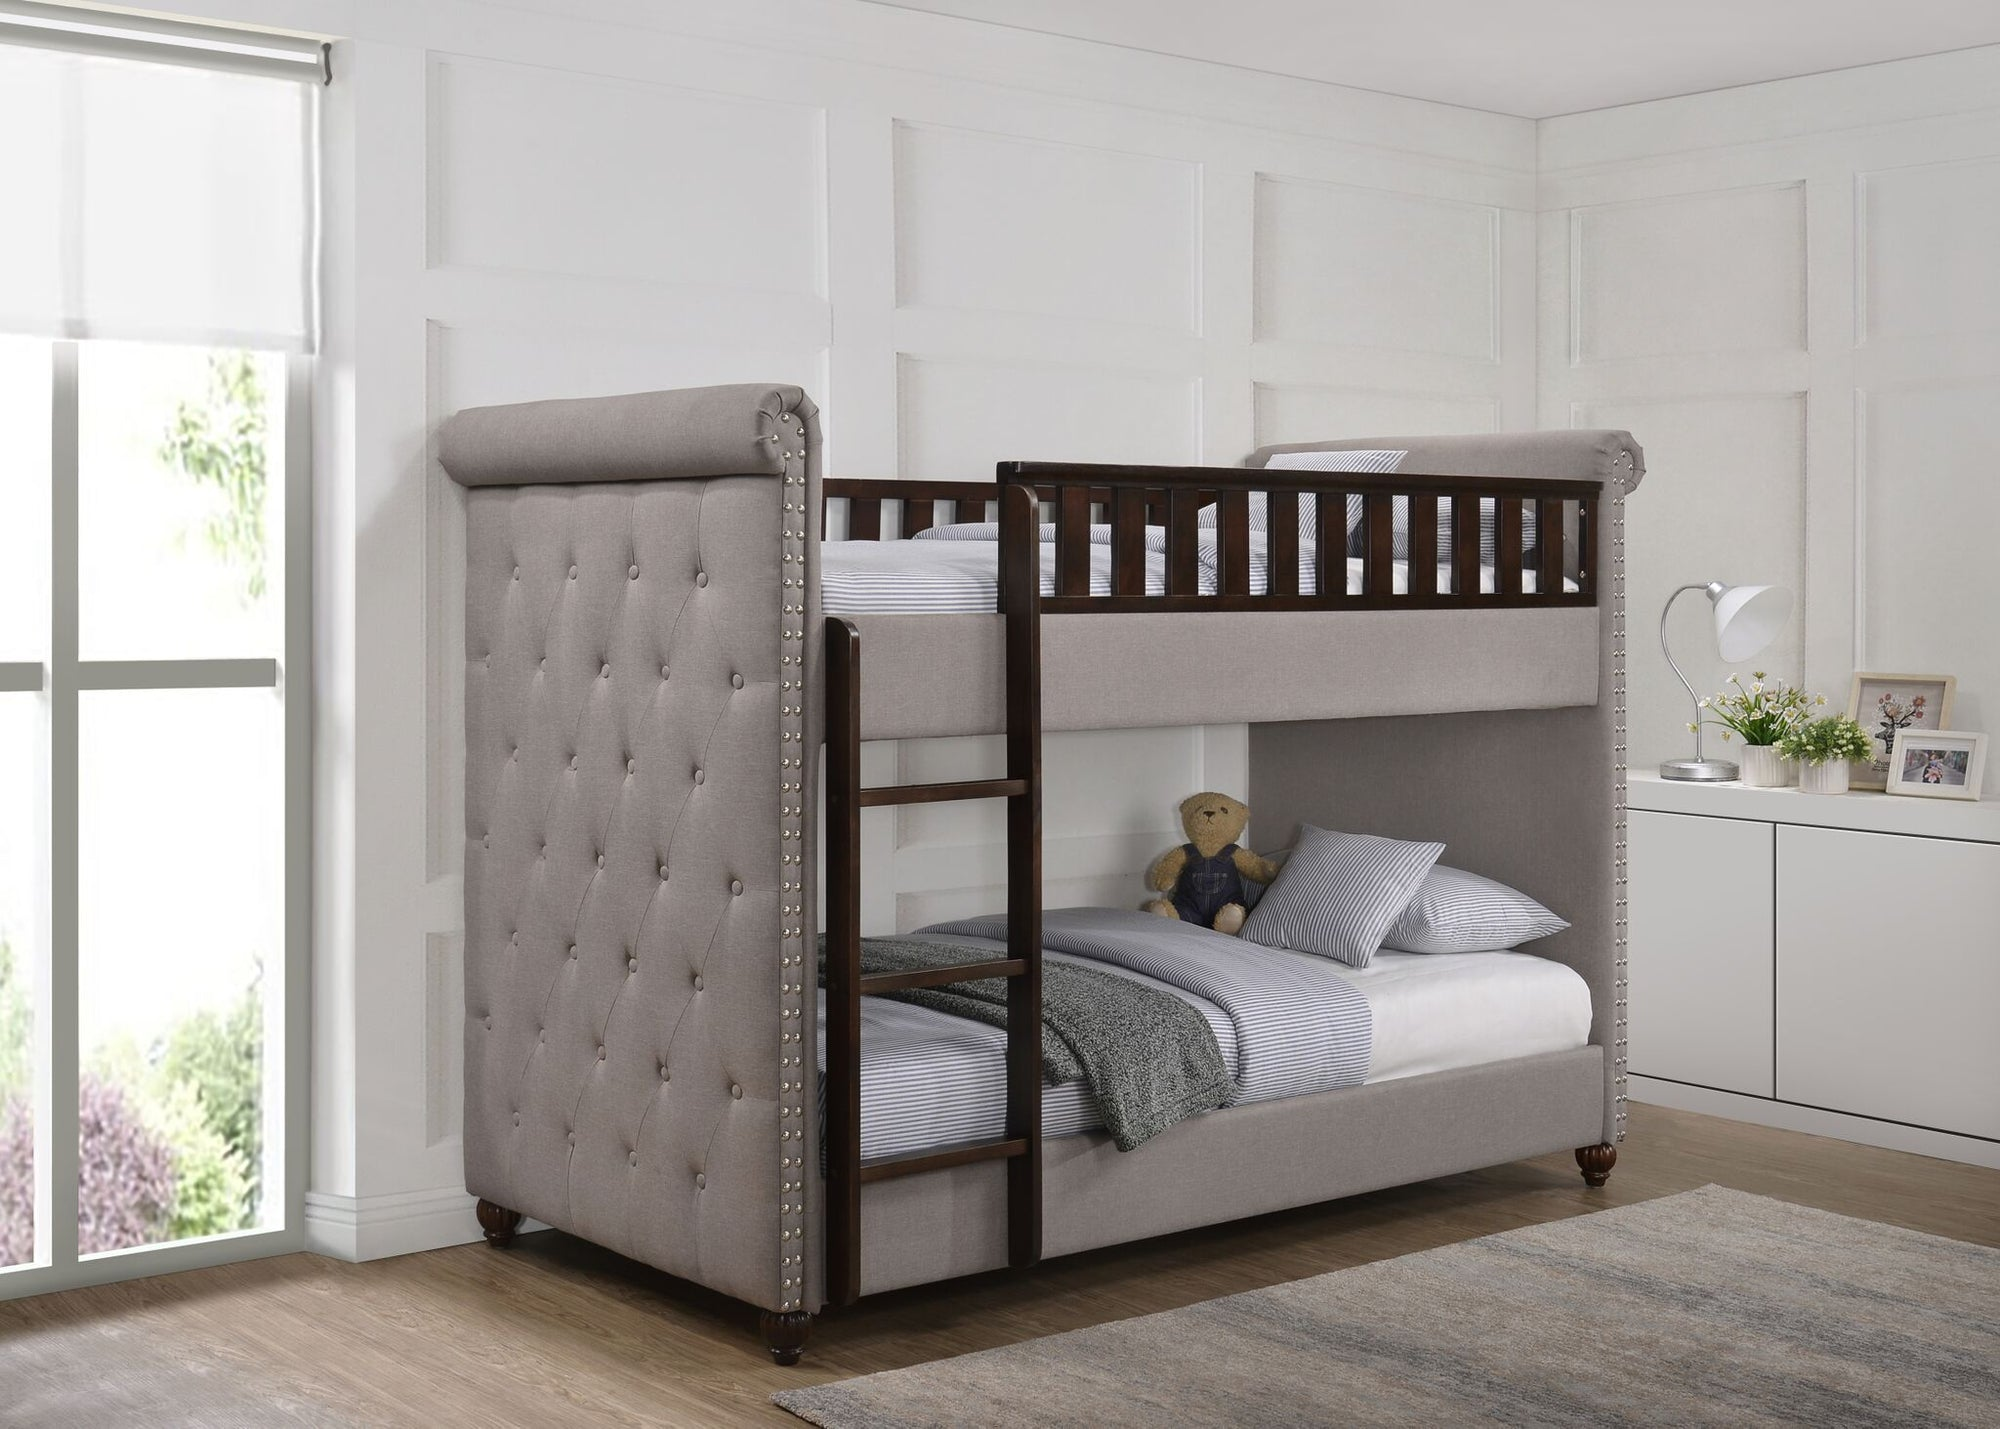 Ava Childrens Light Grey Linen Fabric Chesterfield Bunk Bed Chic